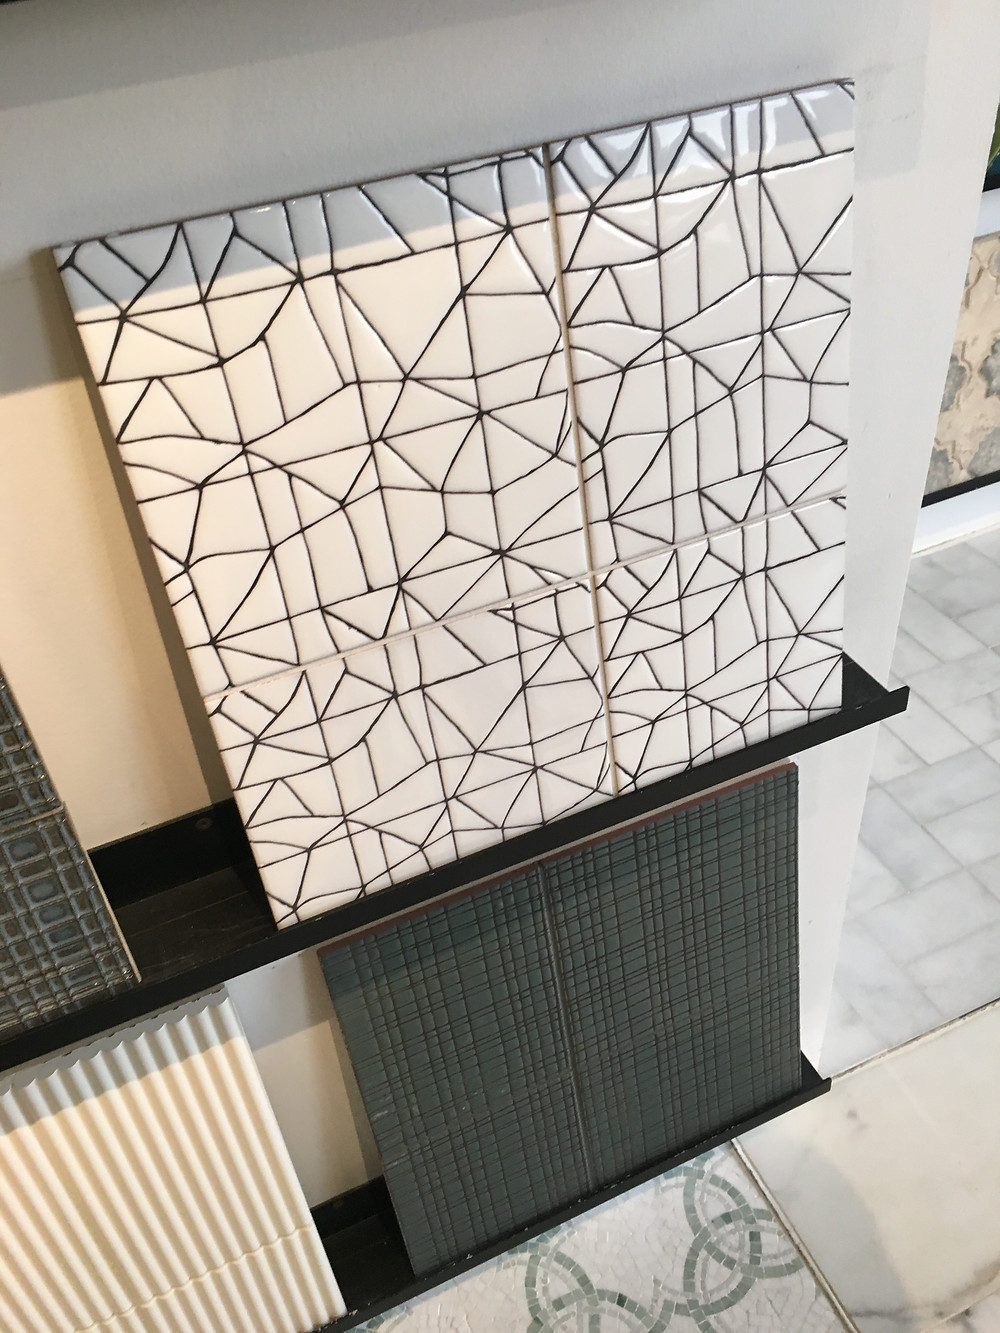 Abstract tile design and texture.